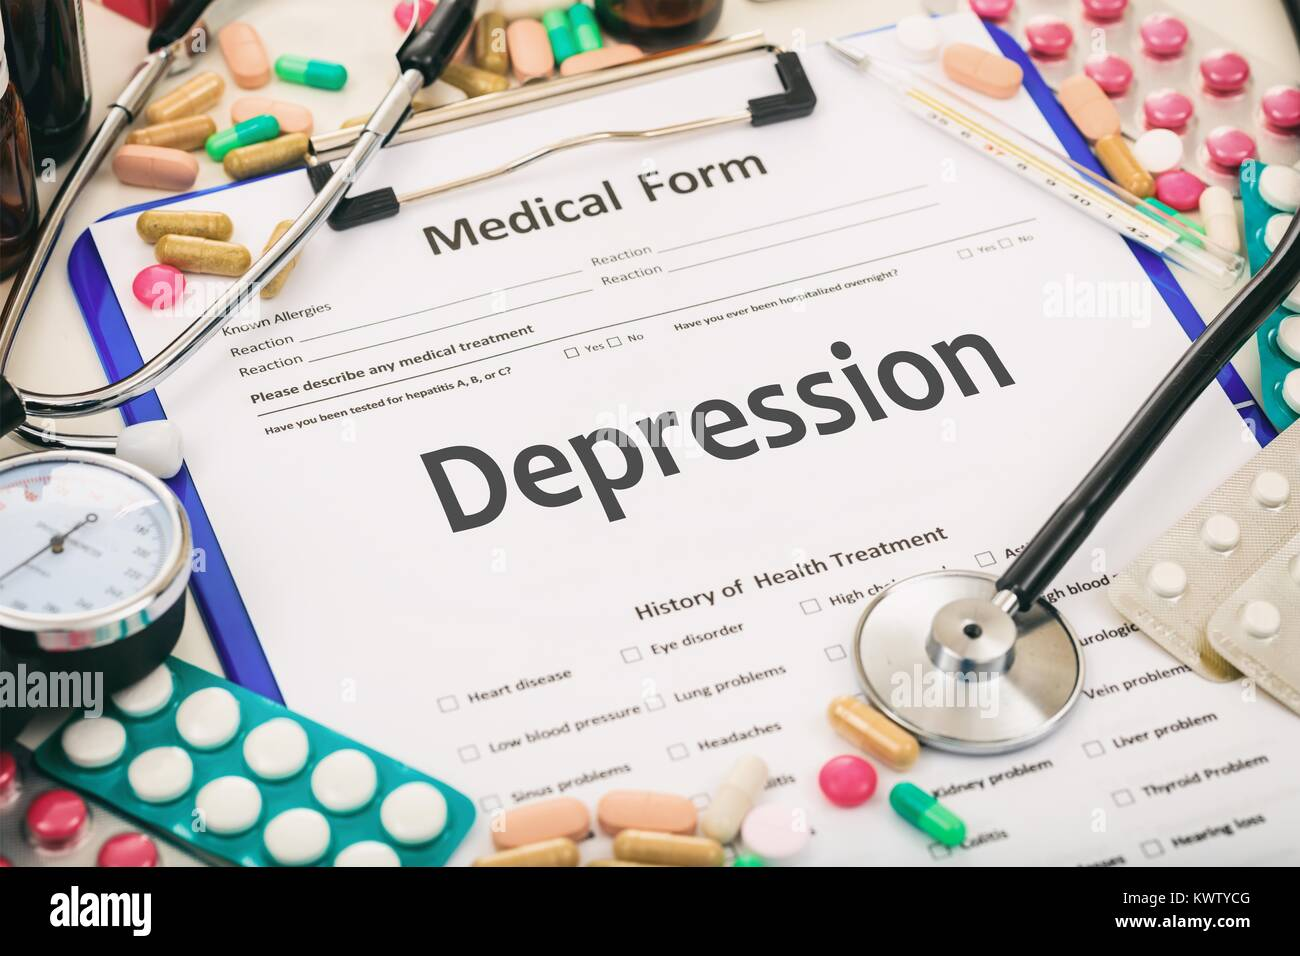 Medical form on a table, diagnosis depression - Stock Image